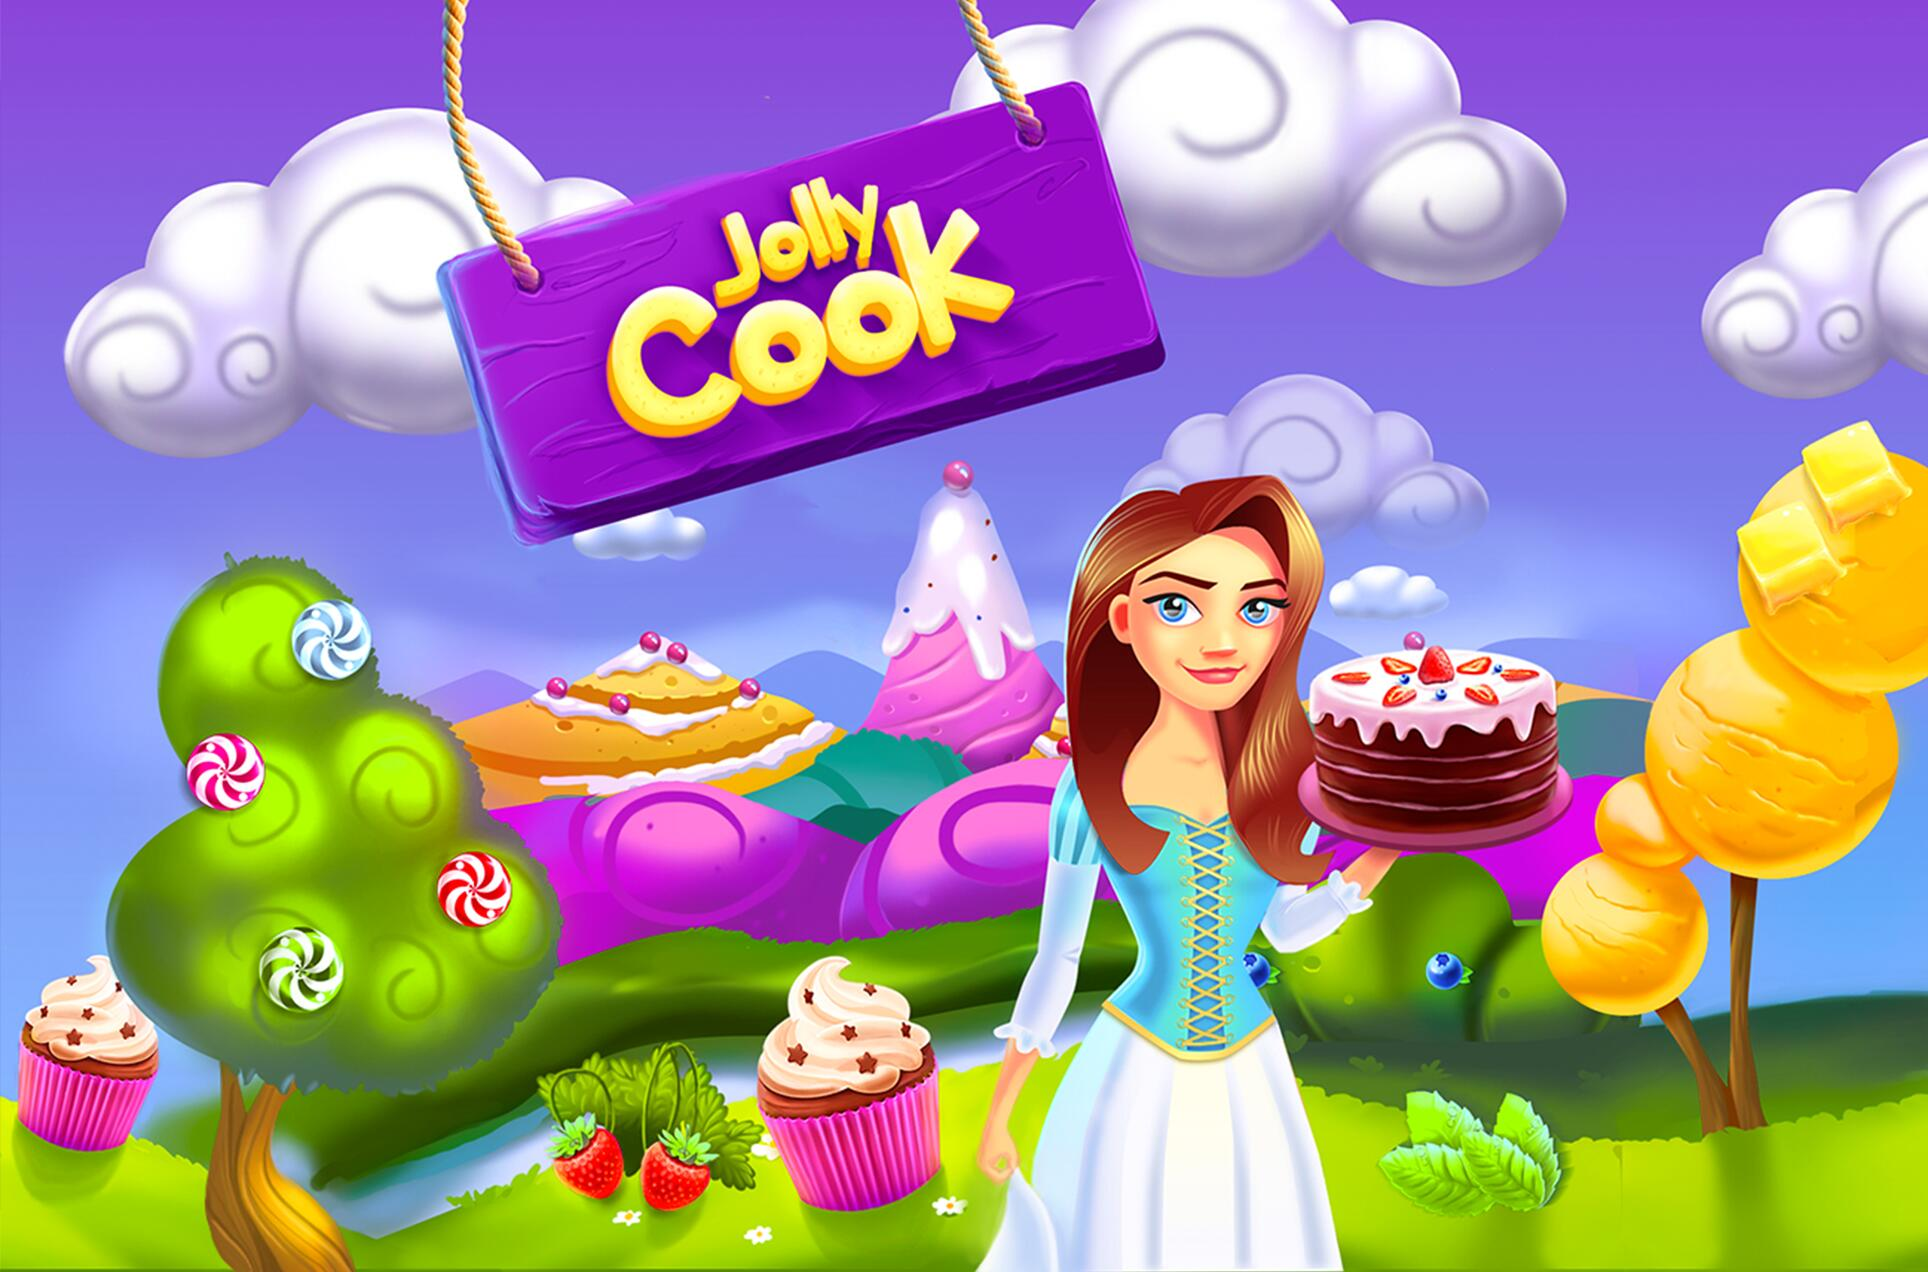 Jolly Cook, Designed and Developed by Ester Digital